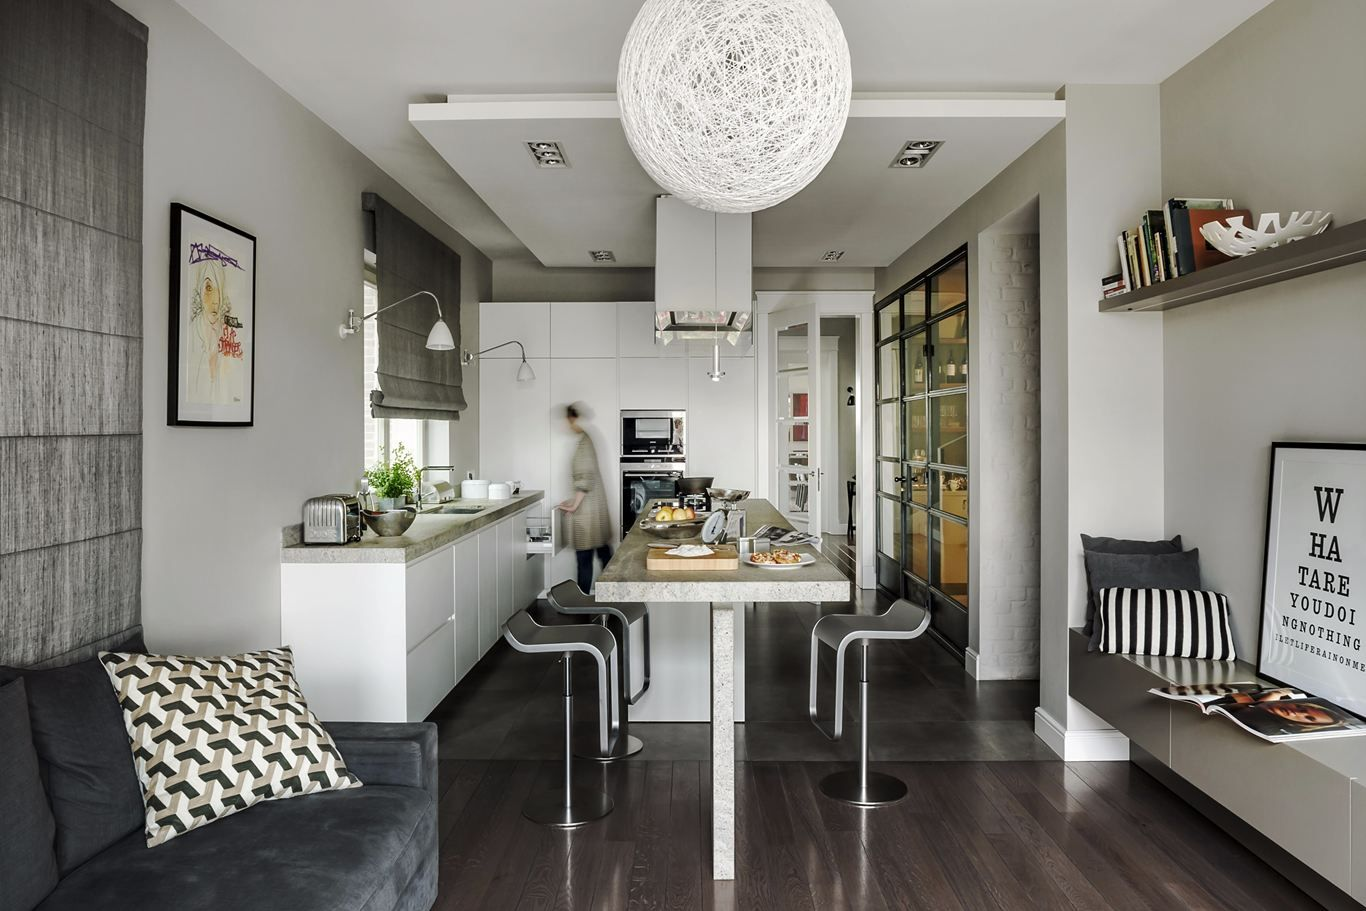 Modern home interior colors modern palace  picture gallery  kitchen  pinterest  palace